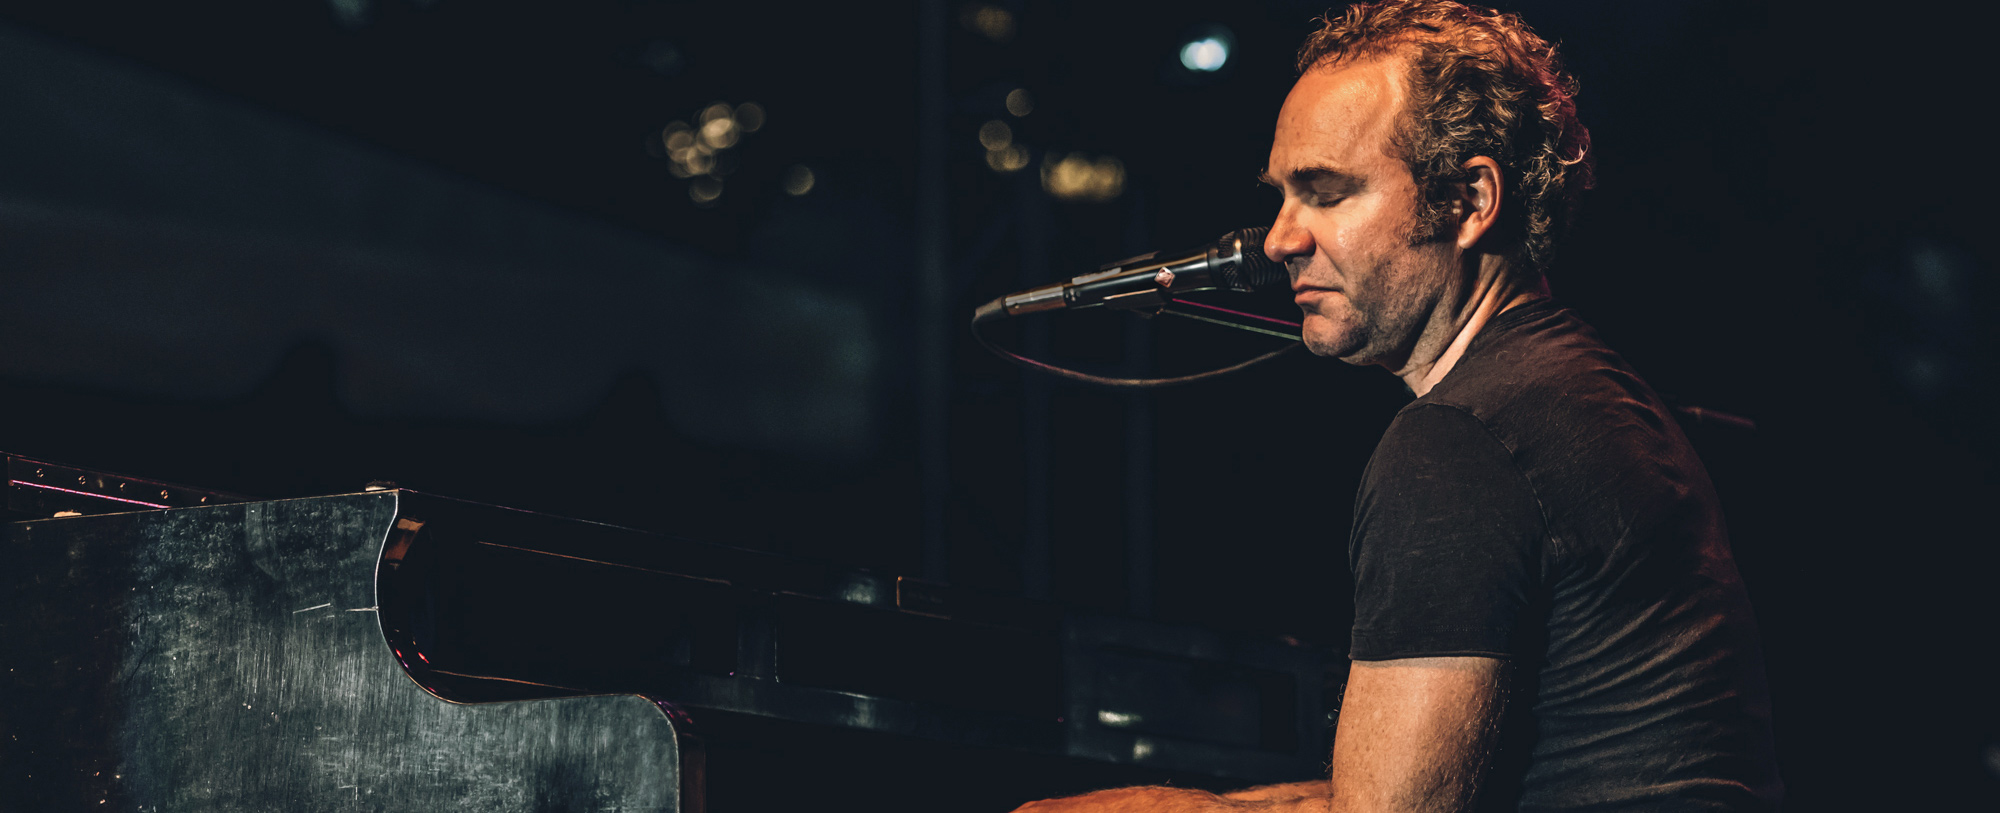 Five For Fighting 2017 Tour